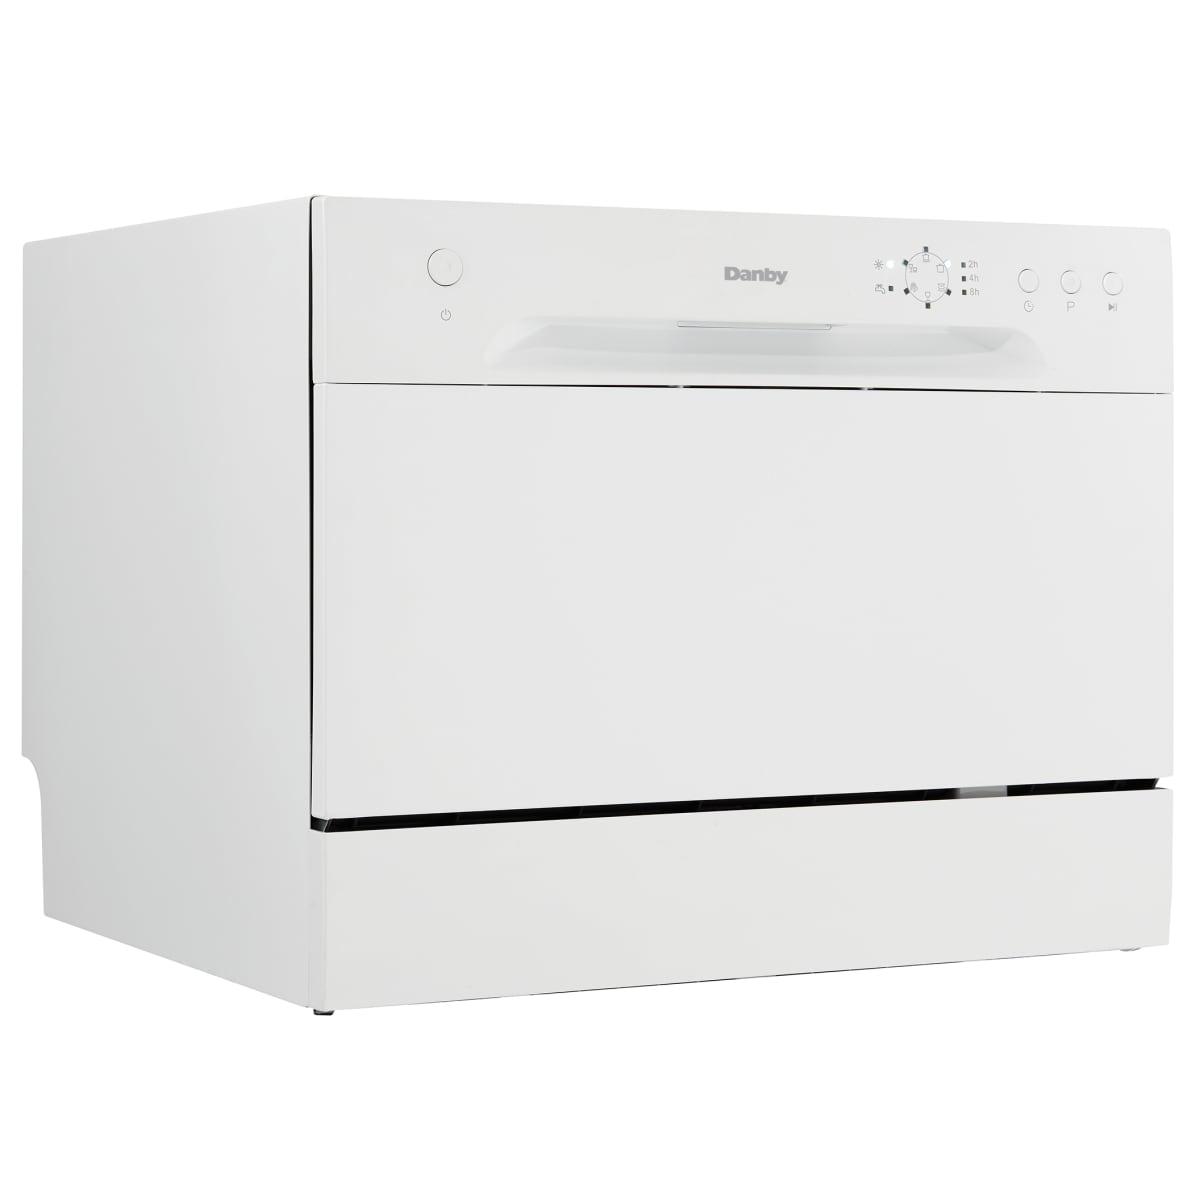 Danby 22 Inch Wide 6 Place Setting Energy Star Countertop Full Console Dishwasher